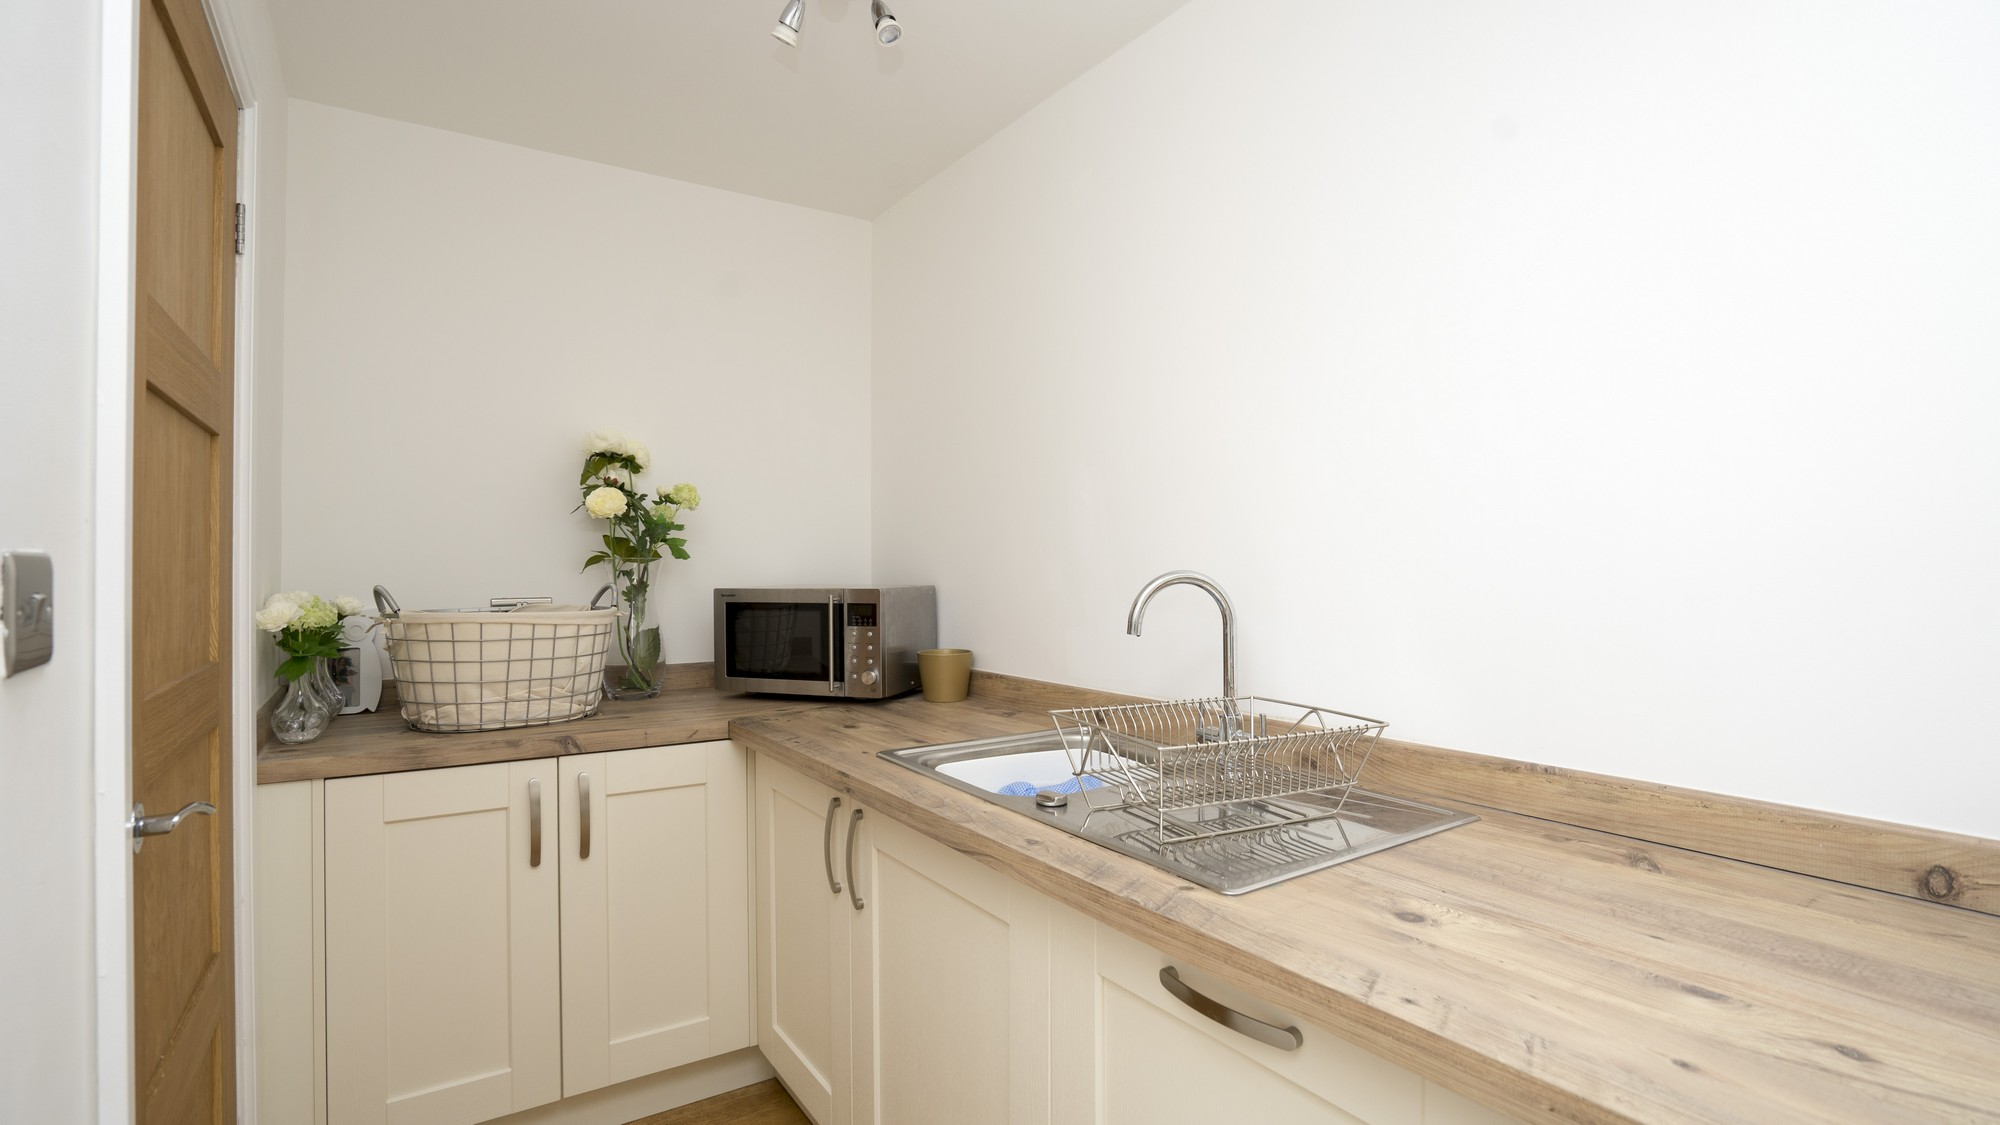 Image of the utility room fitted out with matching cabinets and composite worktops.